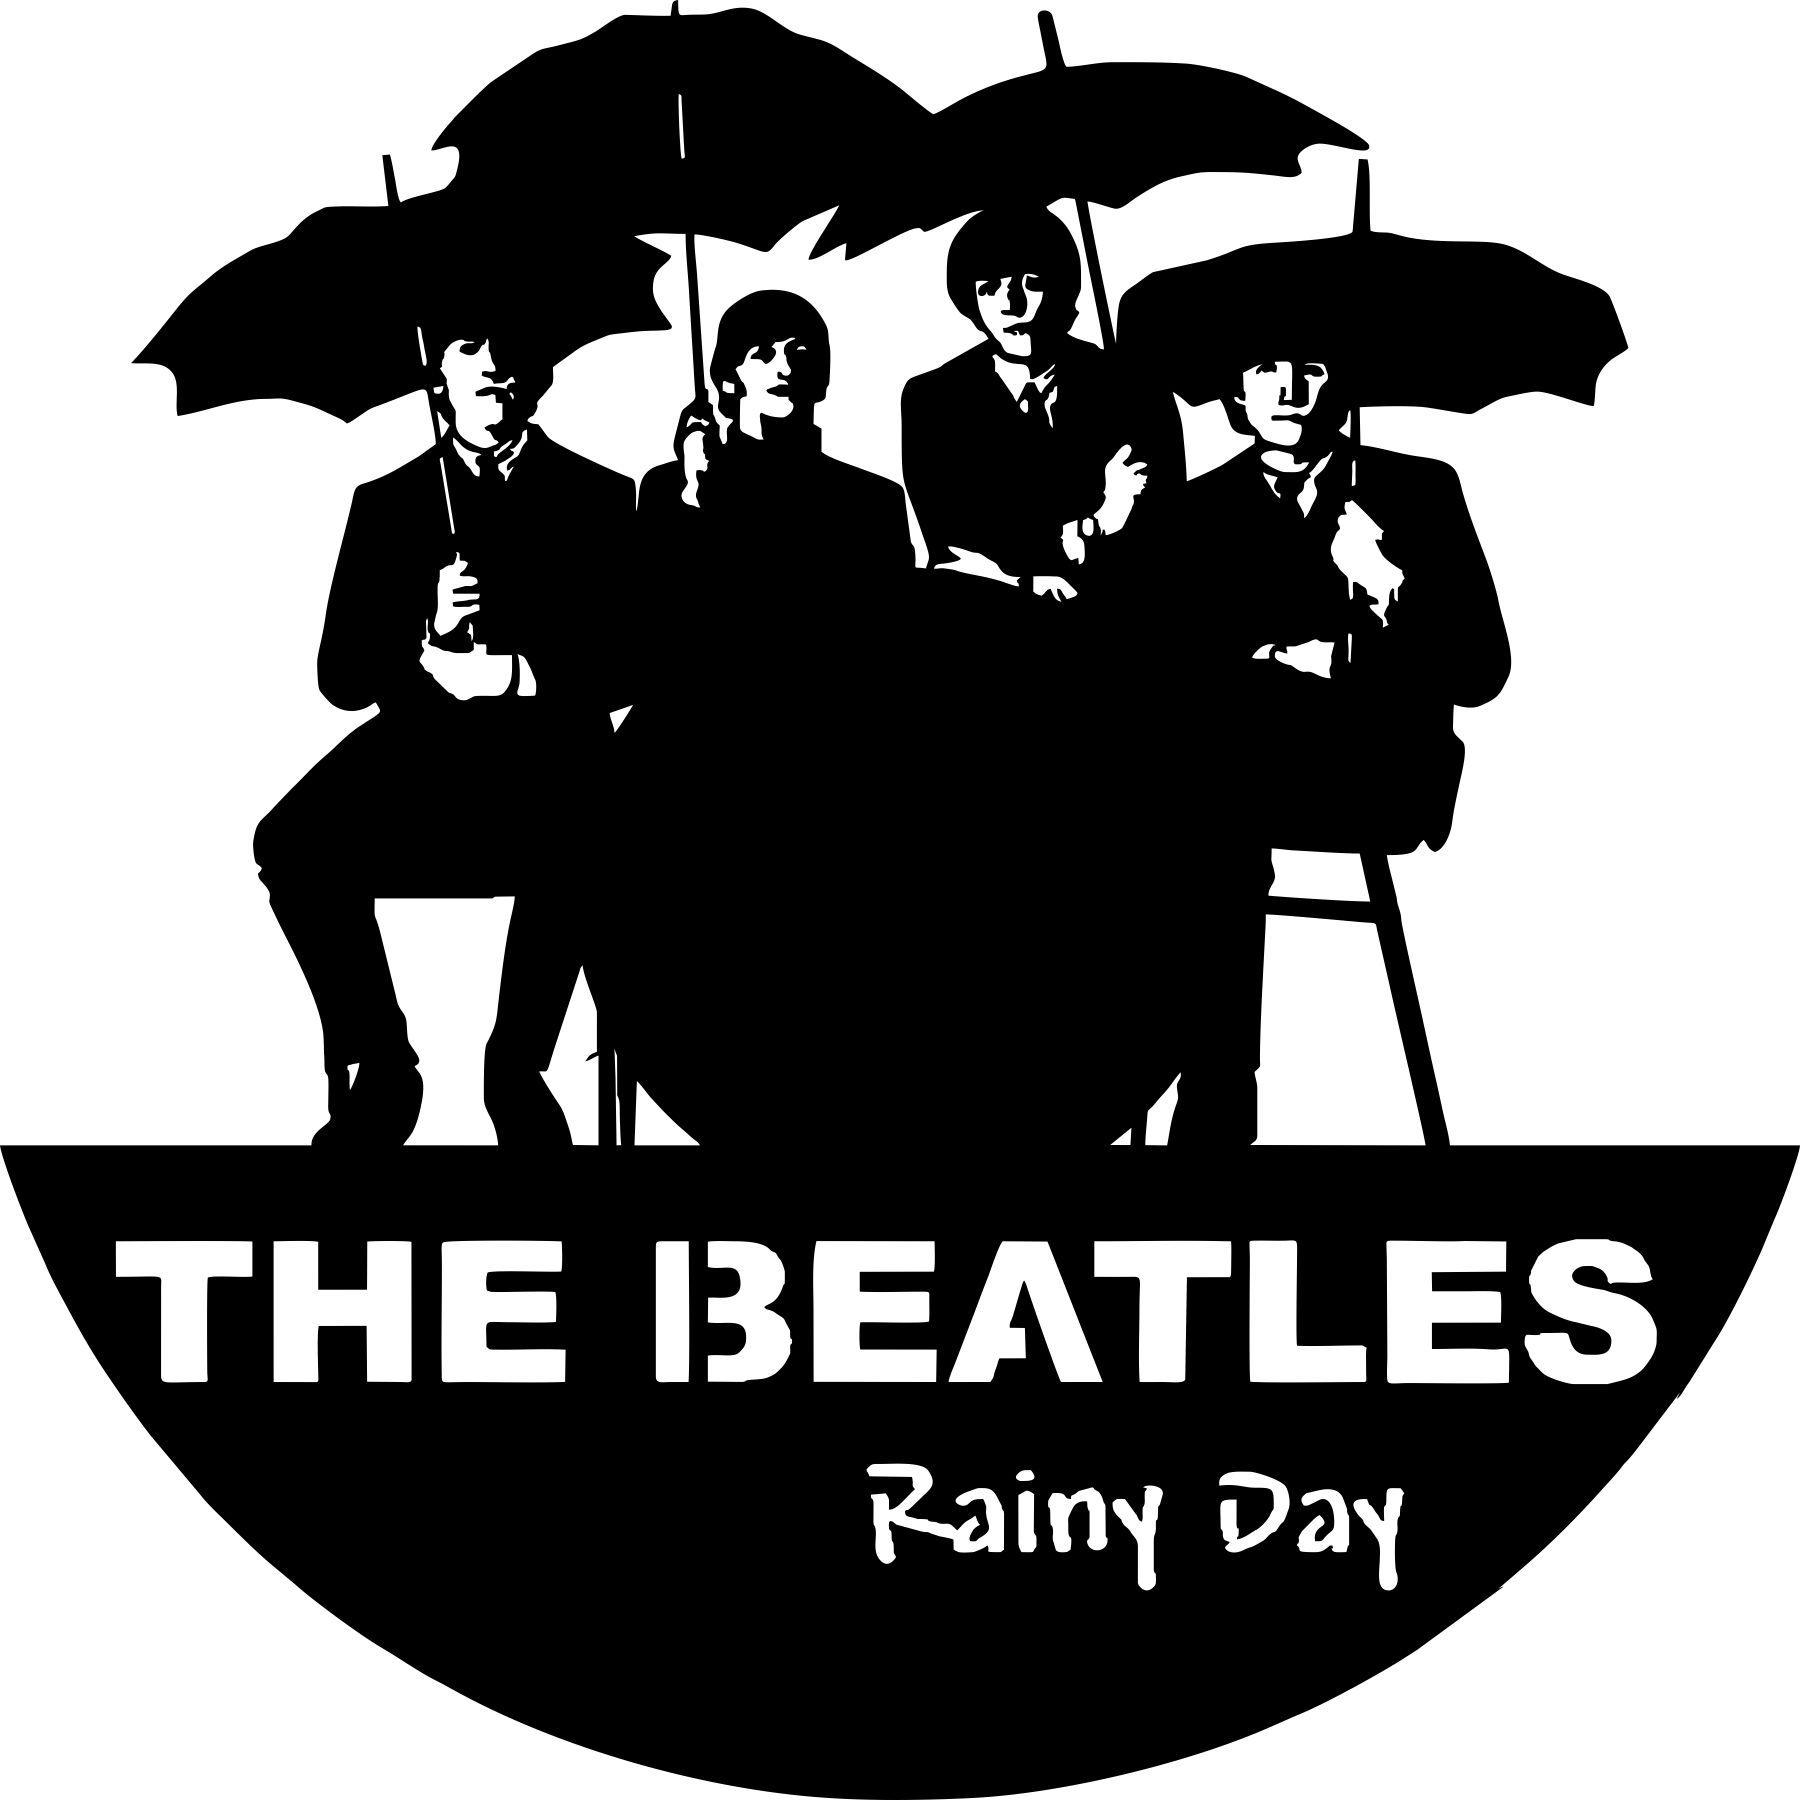 epic beatles wall clocks free vector cdr download